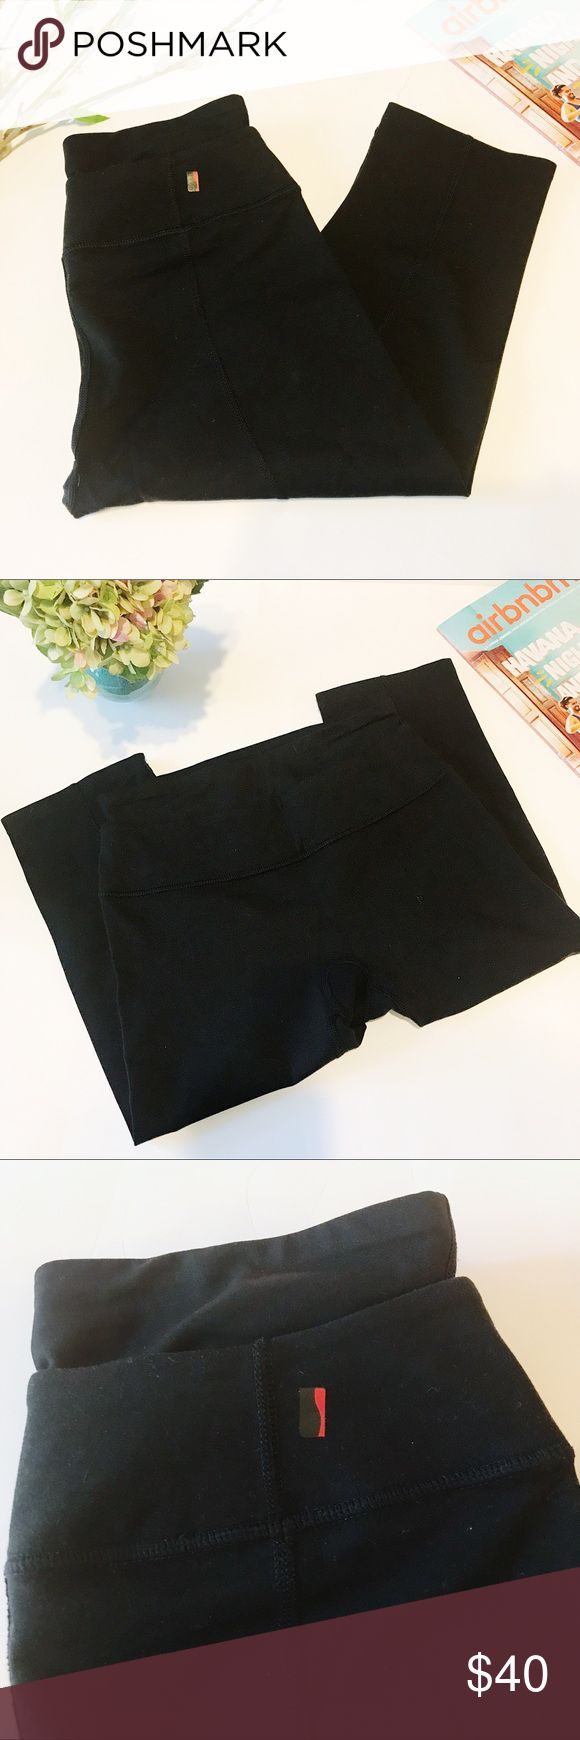 Spanx | Athletic Capri Leggings Your favorite Spanx are now leggings! Slimming capri style. Extra waistband. Most comfortable leggings you'll ever have. Very slight pilling on seat. Great condition. Smoke free, pet free home! SPANX Pants Leggings